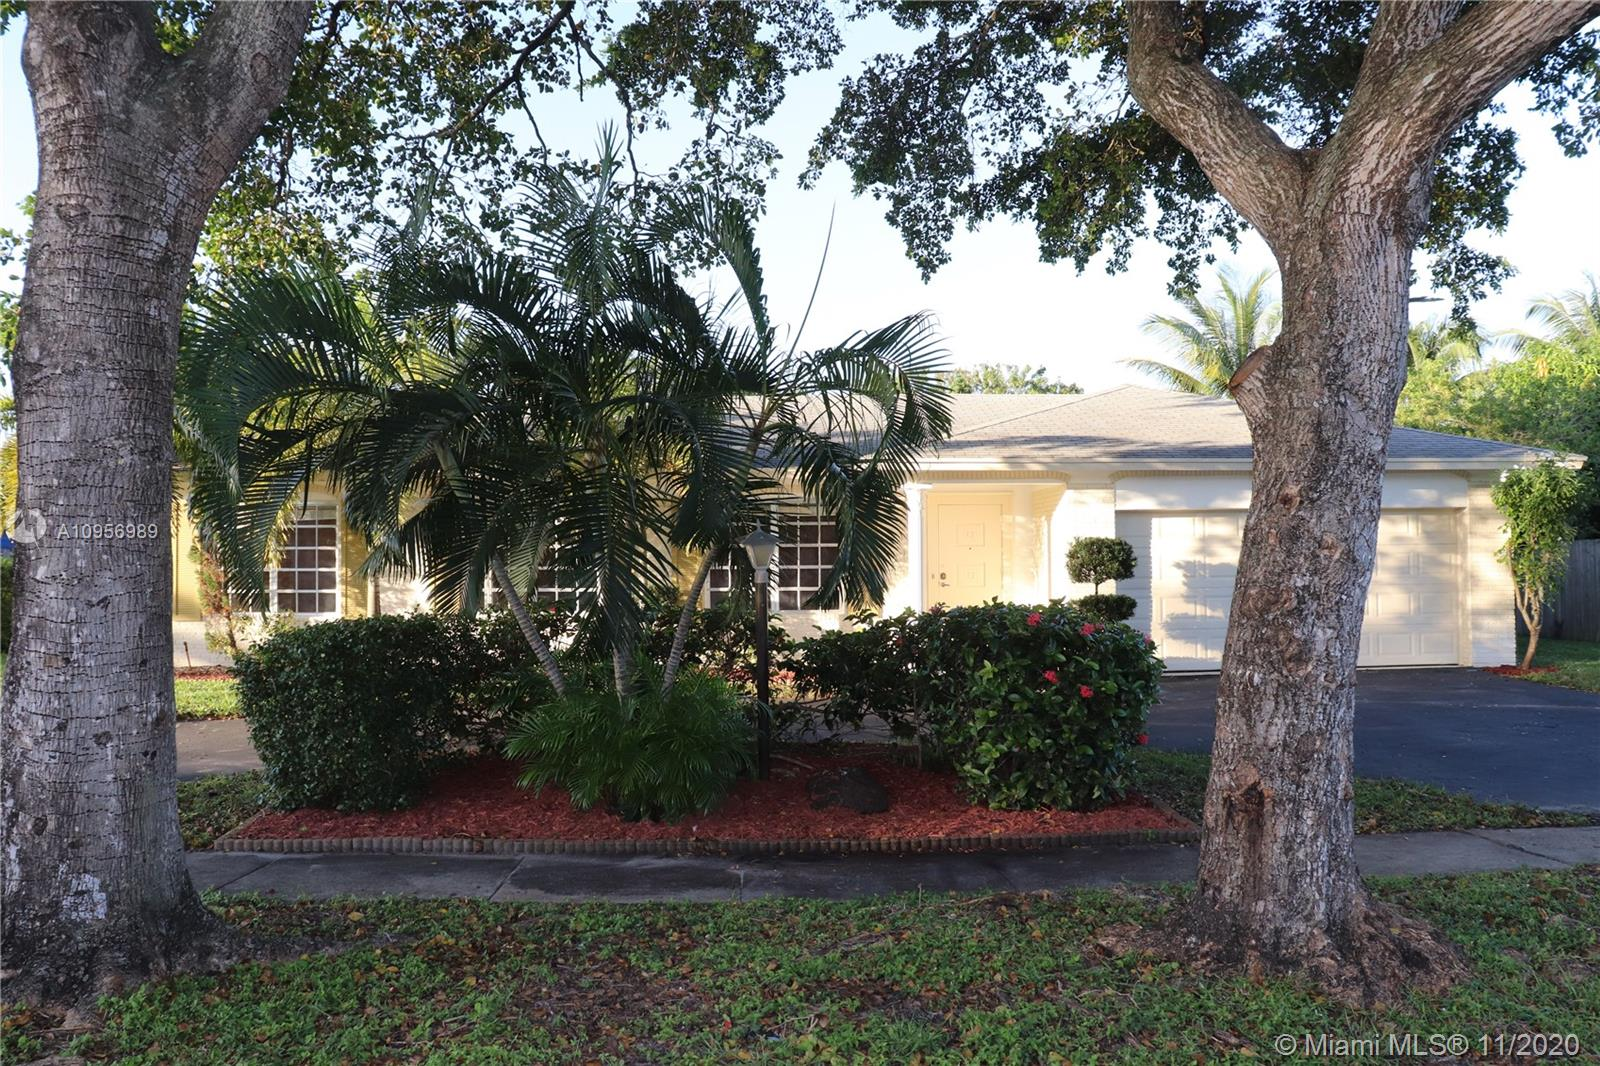 AS IS, wonderful 4/2 home in a great family oriented Plantation Park neighborhood walking distance to Plantation Heritage Park.  This home features four spacious bedrooms and a small office.  The backyard is large enough for a pool, outdoor kitchen and entertainment.   Very good schools, near Whole Foods, and easy access to 595 and the Turnpike are other attractive features of this neighborhood.  No HOA fees are required.  This is a must see home and will sell fast.  Easy to show.  Proof of funds is required for an all cash purchase and DU approval or preapproval is required.  Home is vacant and easy to show.  REALATORS:  Please have your clients wear a mask at all times and use the hand sanitizer.